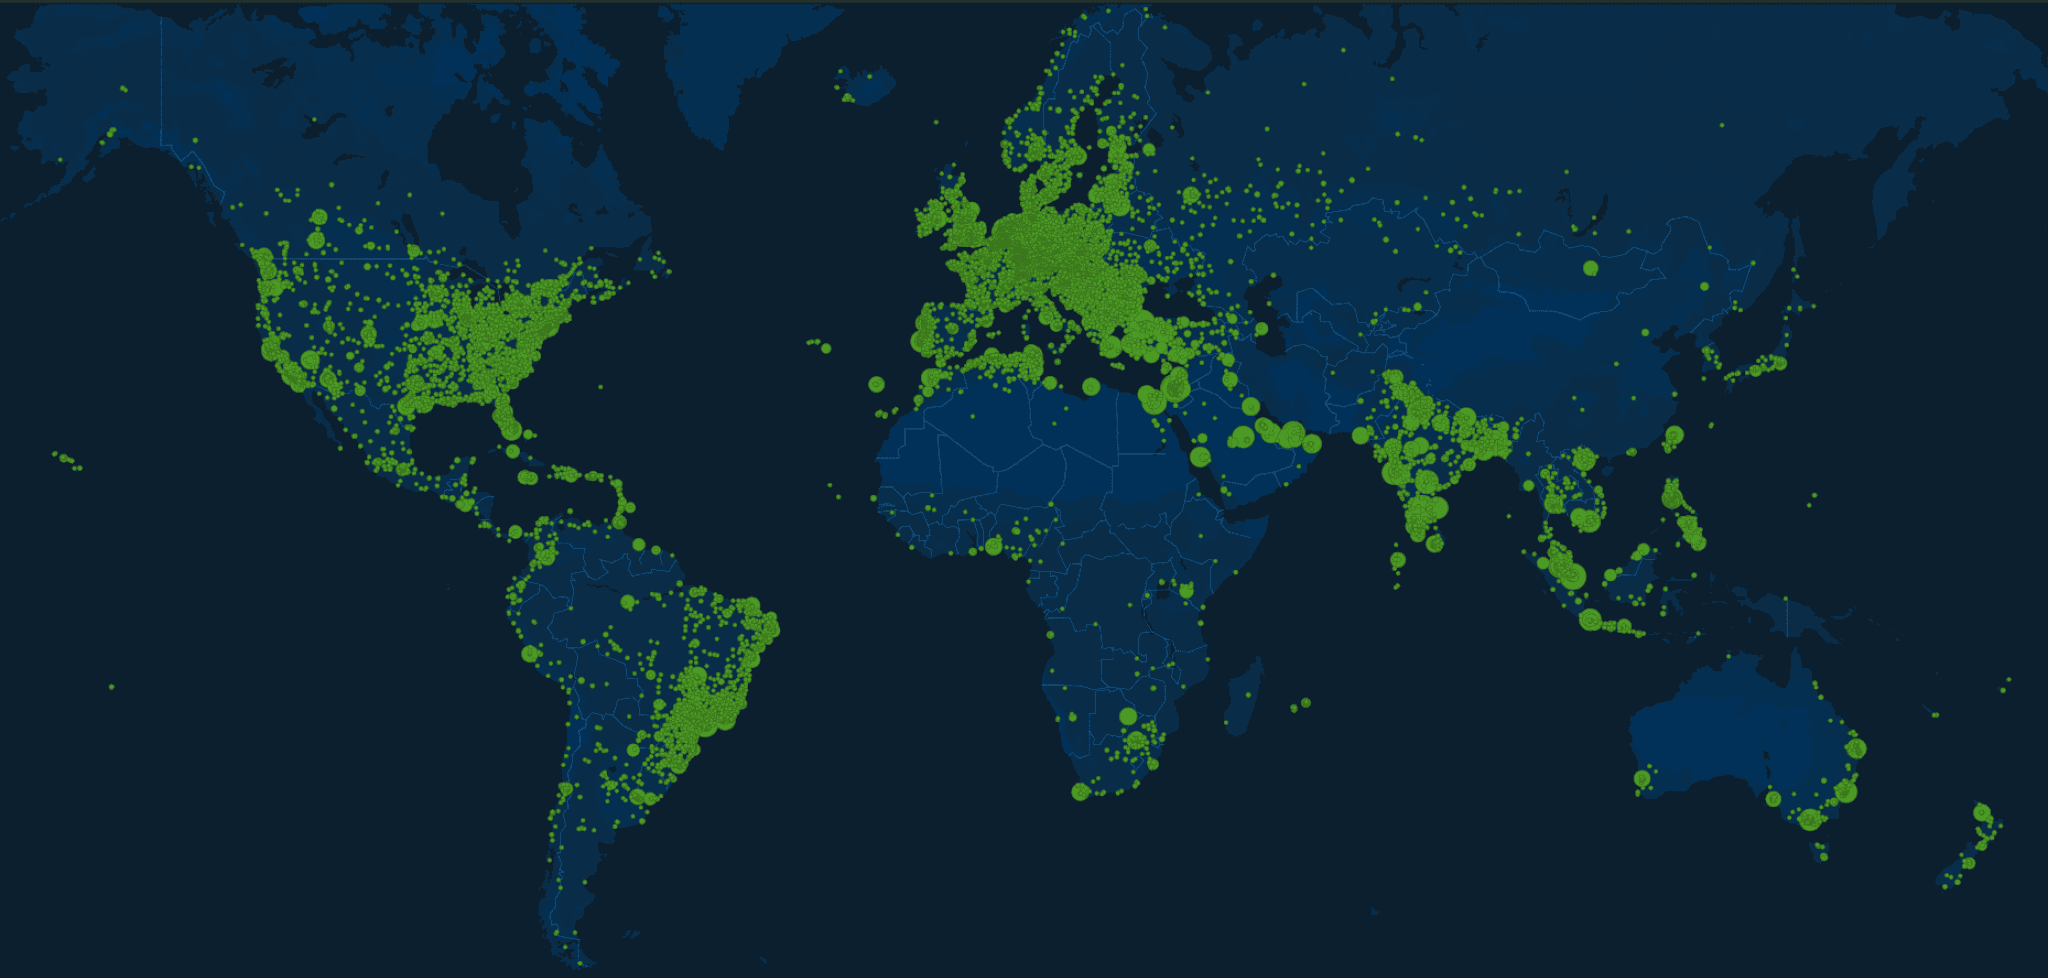 A world map showing the nodes on the Salad network.